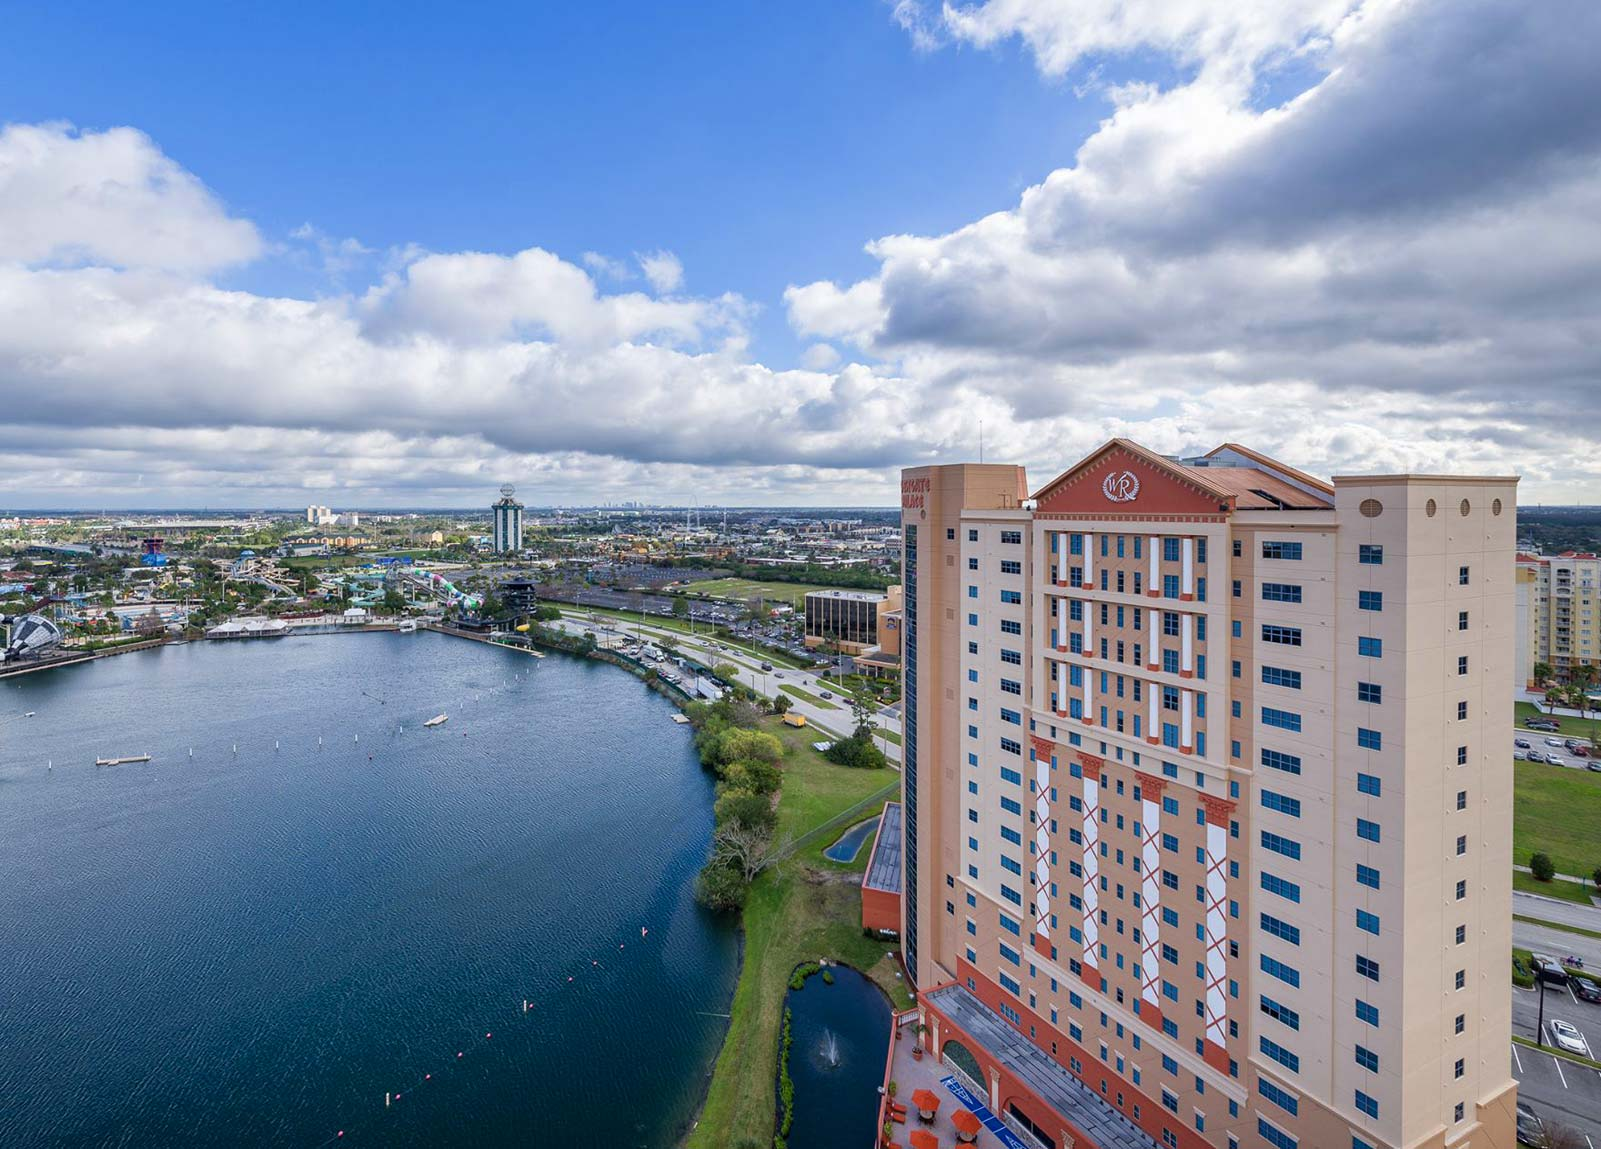 Westgate Vacation Villas offers the finest in luxury accommodations just minutes from the main entrance to Walt Disney World® Resort and within close proximity to Universal Orlando® Resort and SeaWorld® Orlando.